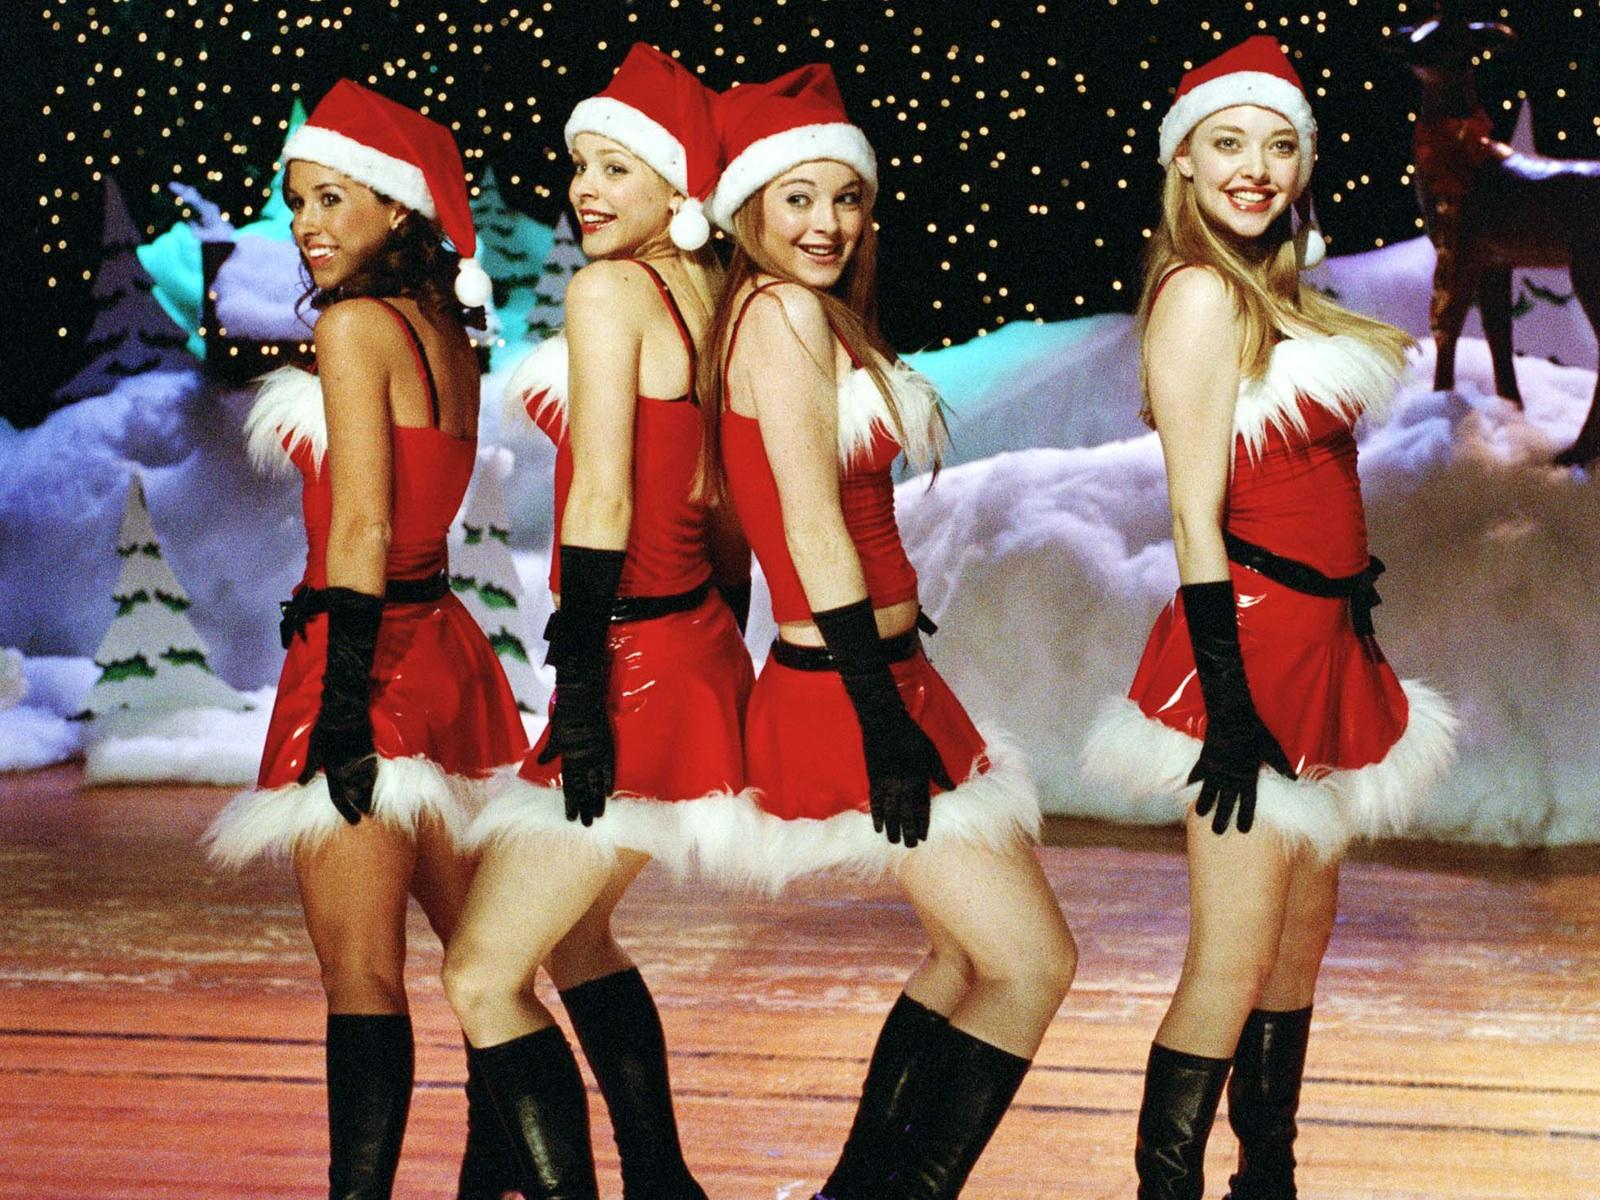 RT @The1DMofo: FIFTH HARMONY DANCING OR THE MEAN GIRLS PERFORMANCE OF JINGLE BELL ROCK 99% OF PEOPLE WILL GET THIS WRONG http://t.co/PVn ...